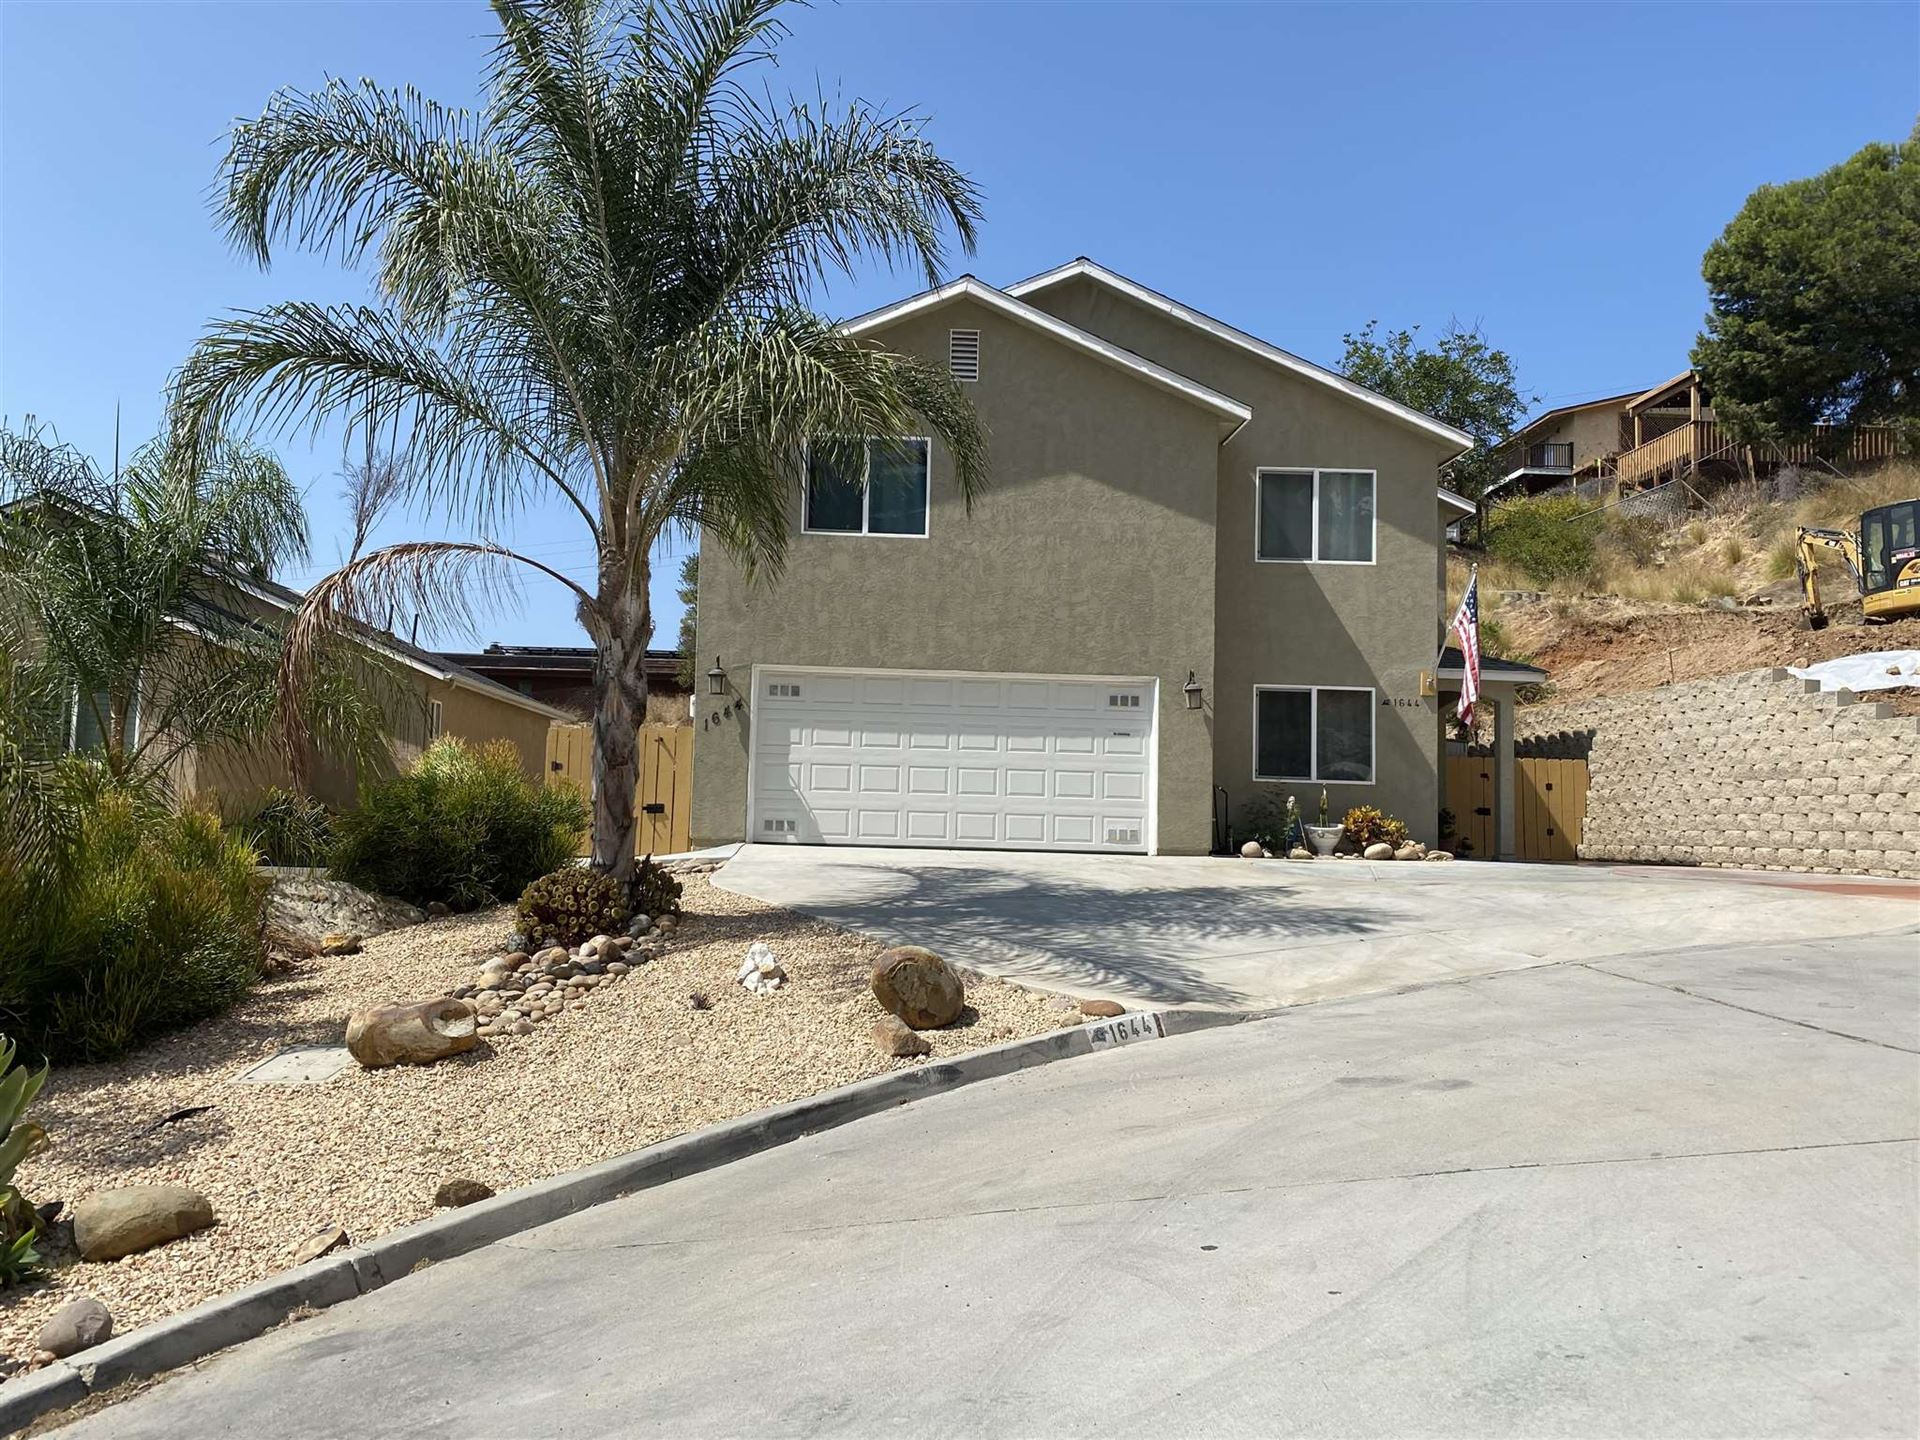 1644 Paraiso Ave, Spring Valley, CA 91977 - MLS#: 200045928